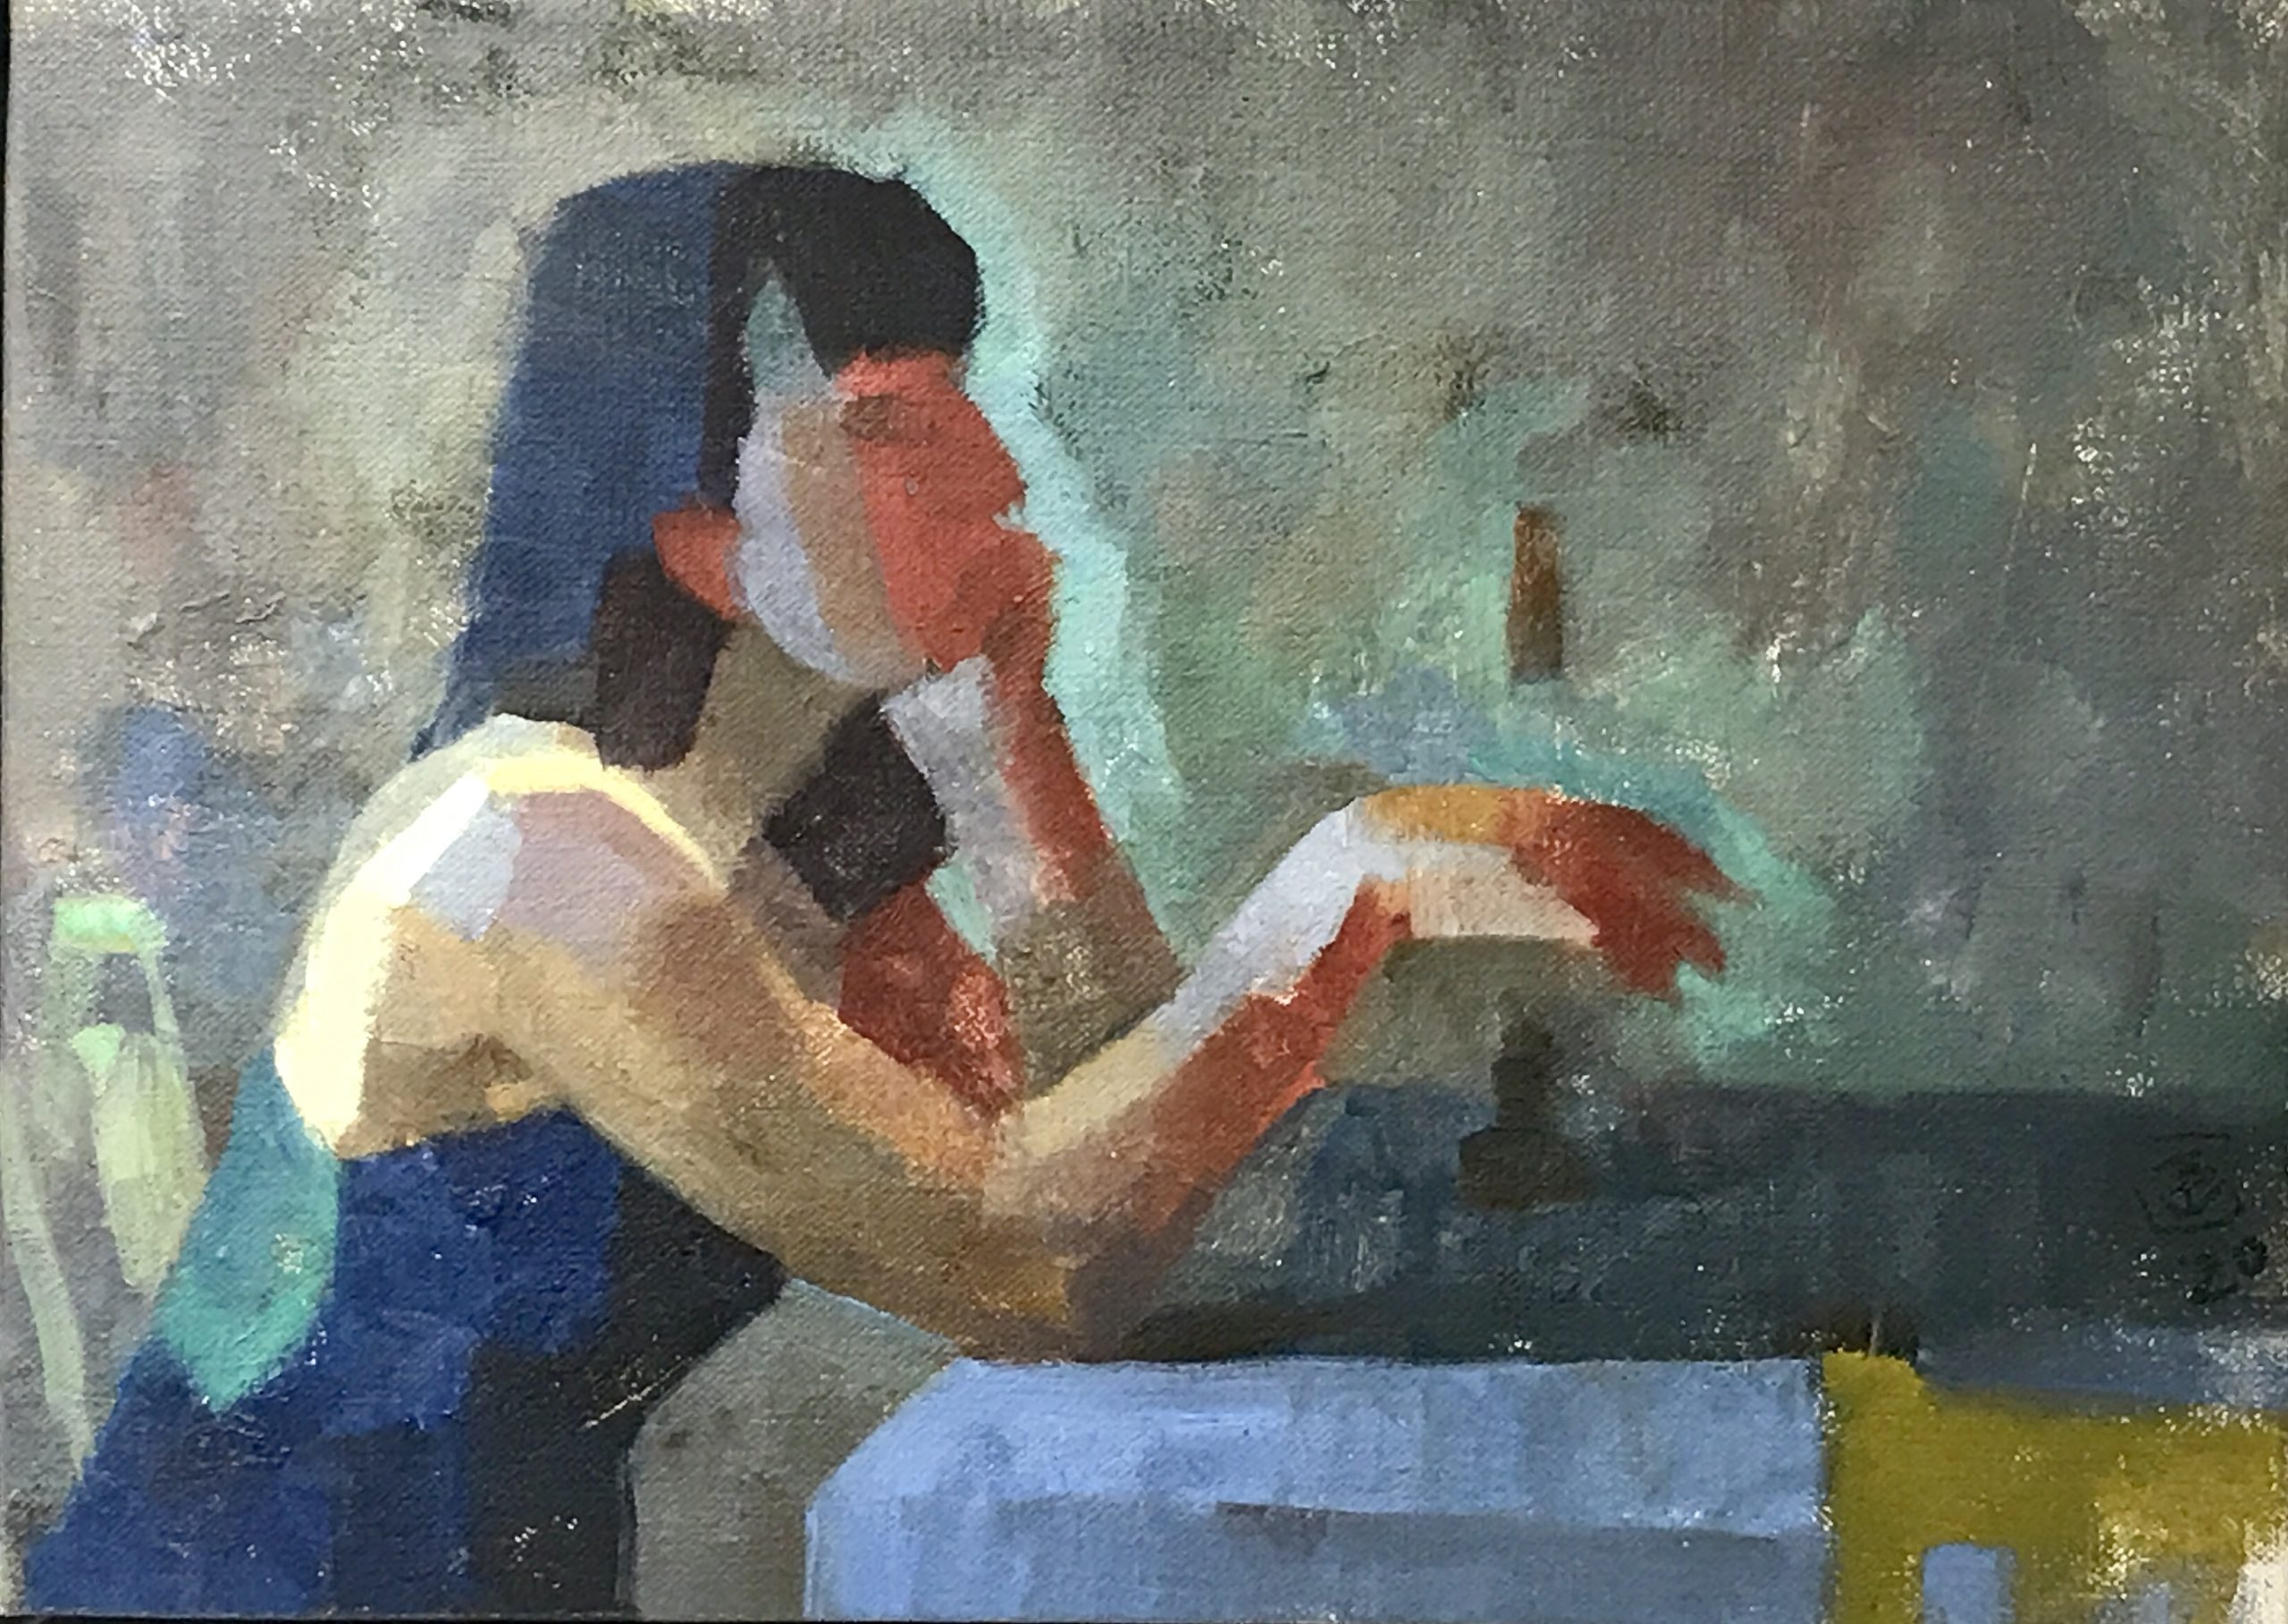 """James Bland - 2020 -Gloria at a Table - Oil on Canvas - 12"""" x 8"""""""